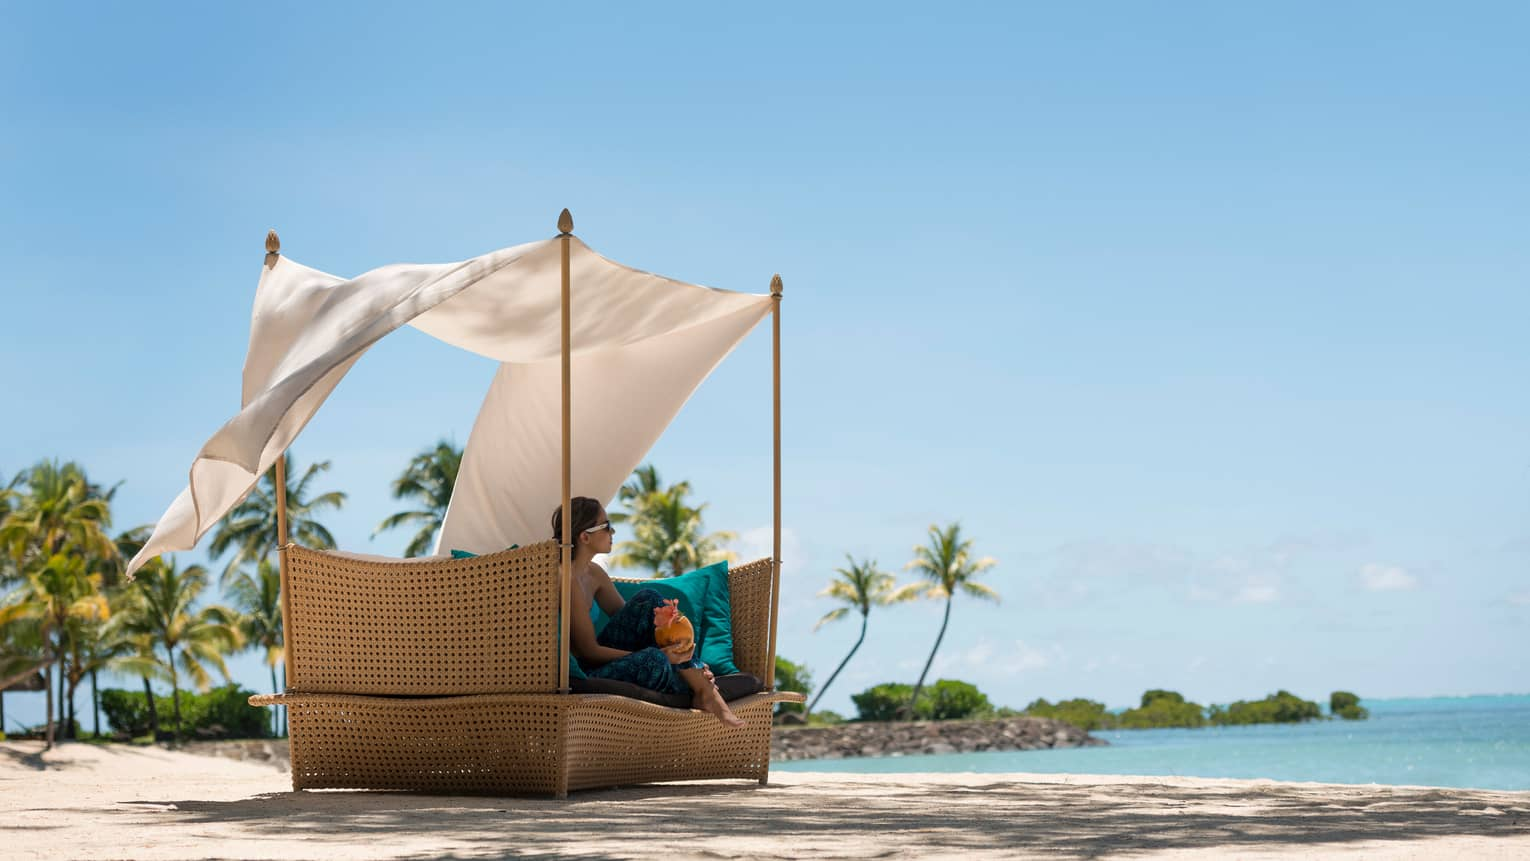 Woman lounges on wicker cabana chair with flowing white curtains on beach